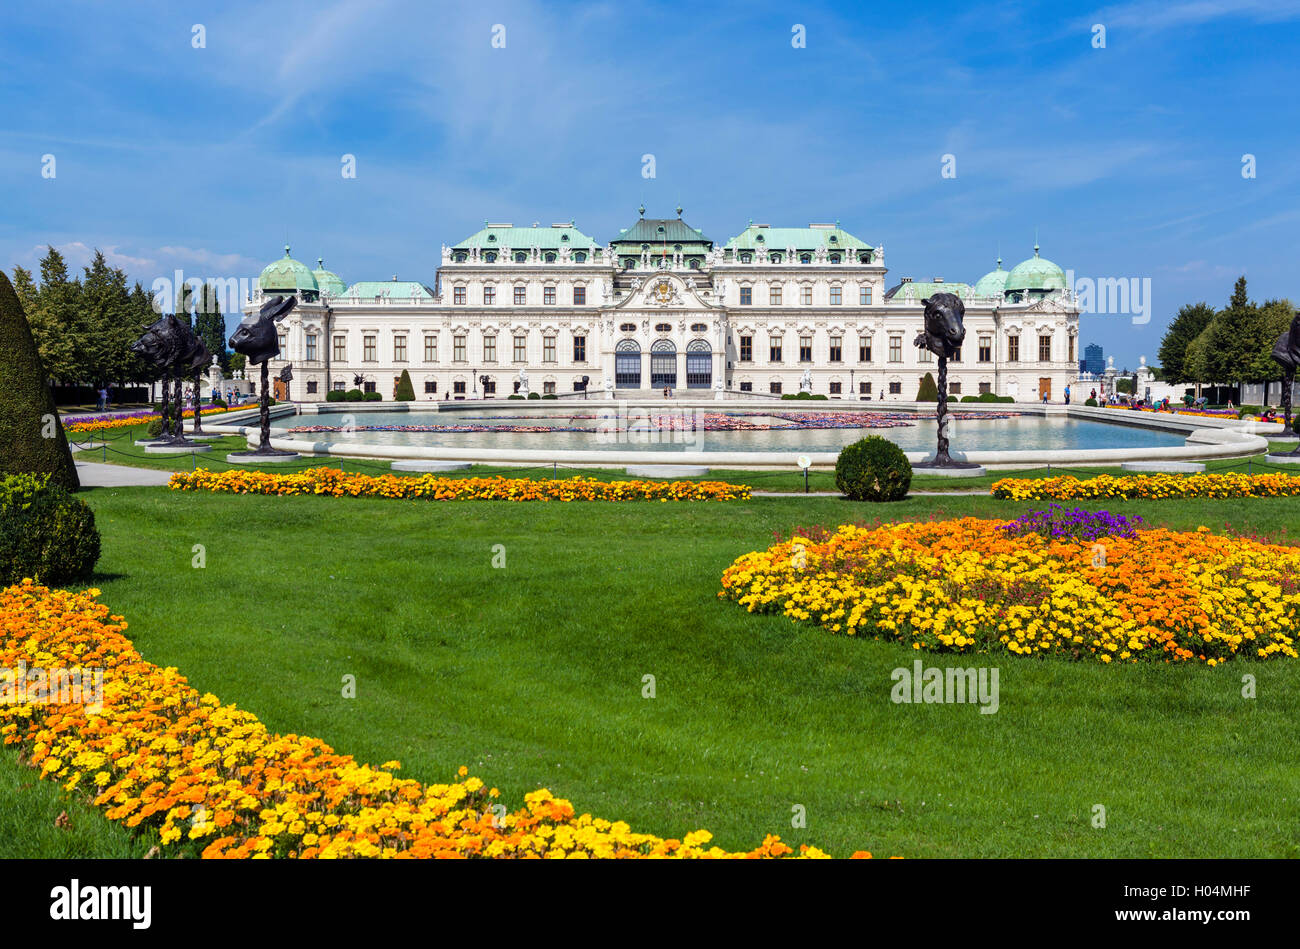 The Oberes Belvedere, summer palace of Prince Eugene of Savoy, Vienna, Austria - Stock Image